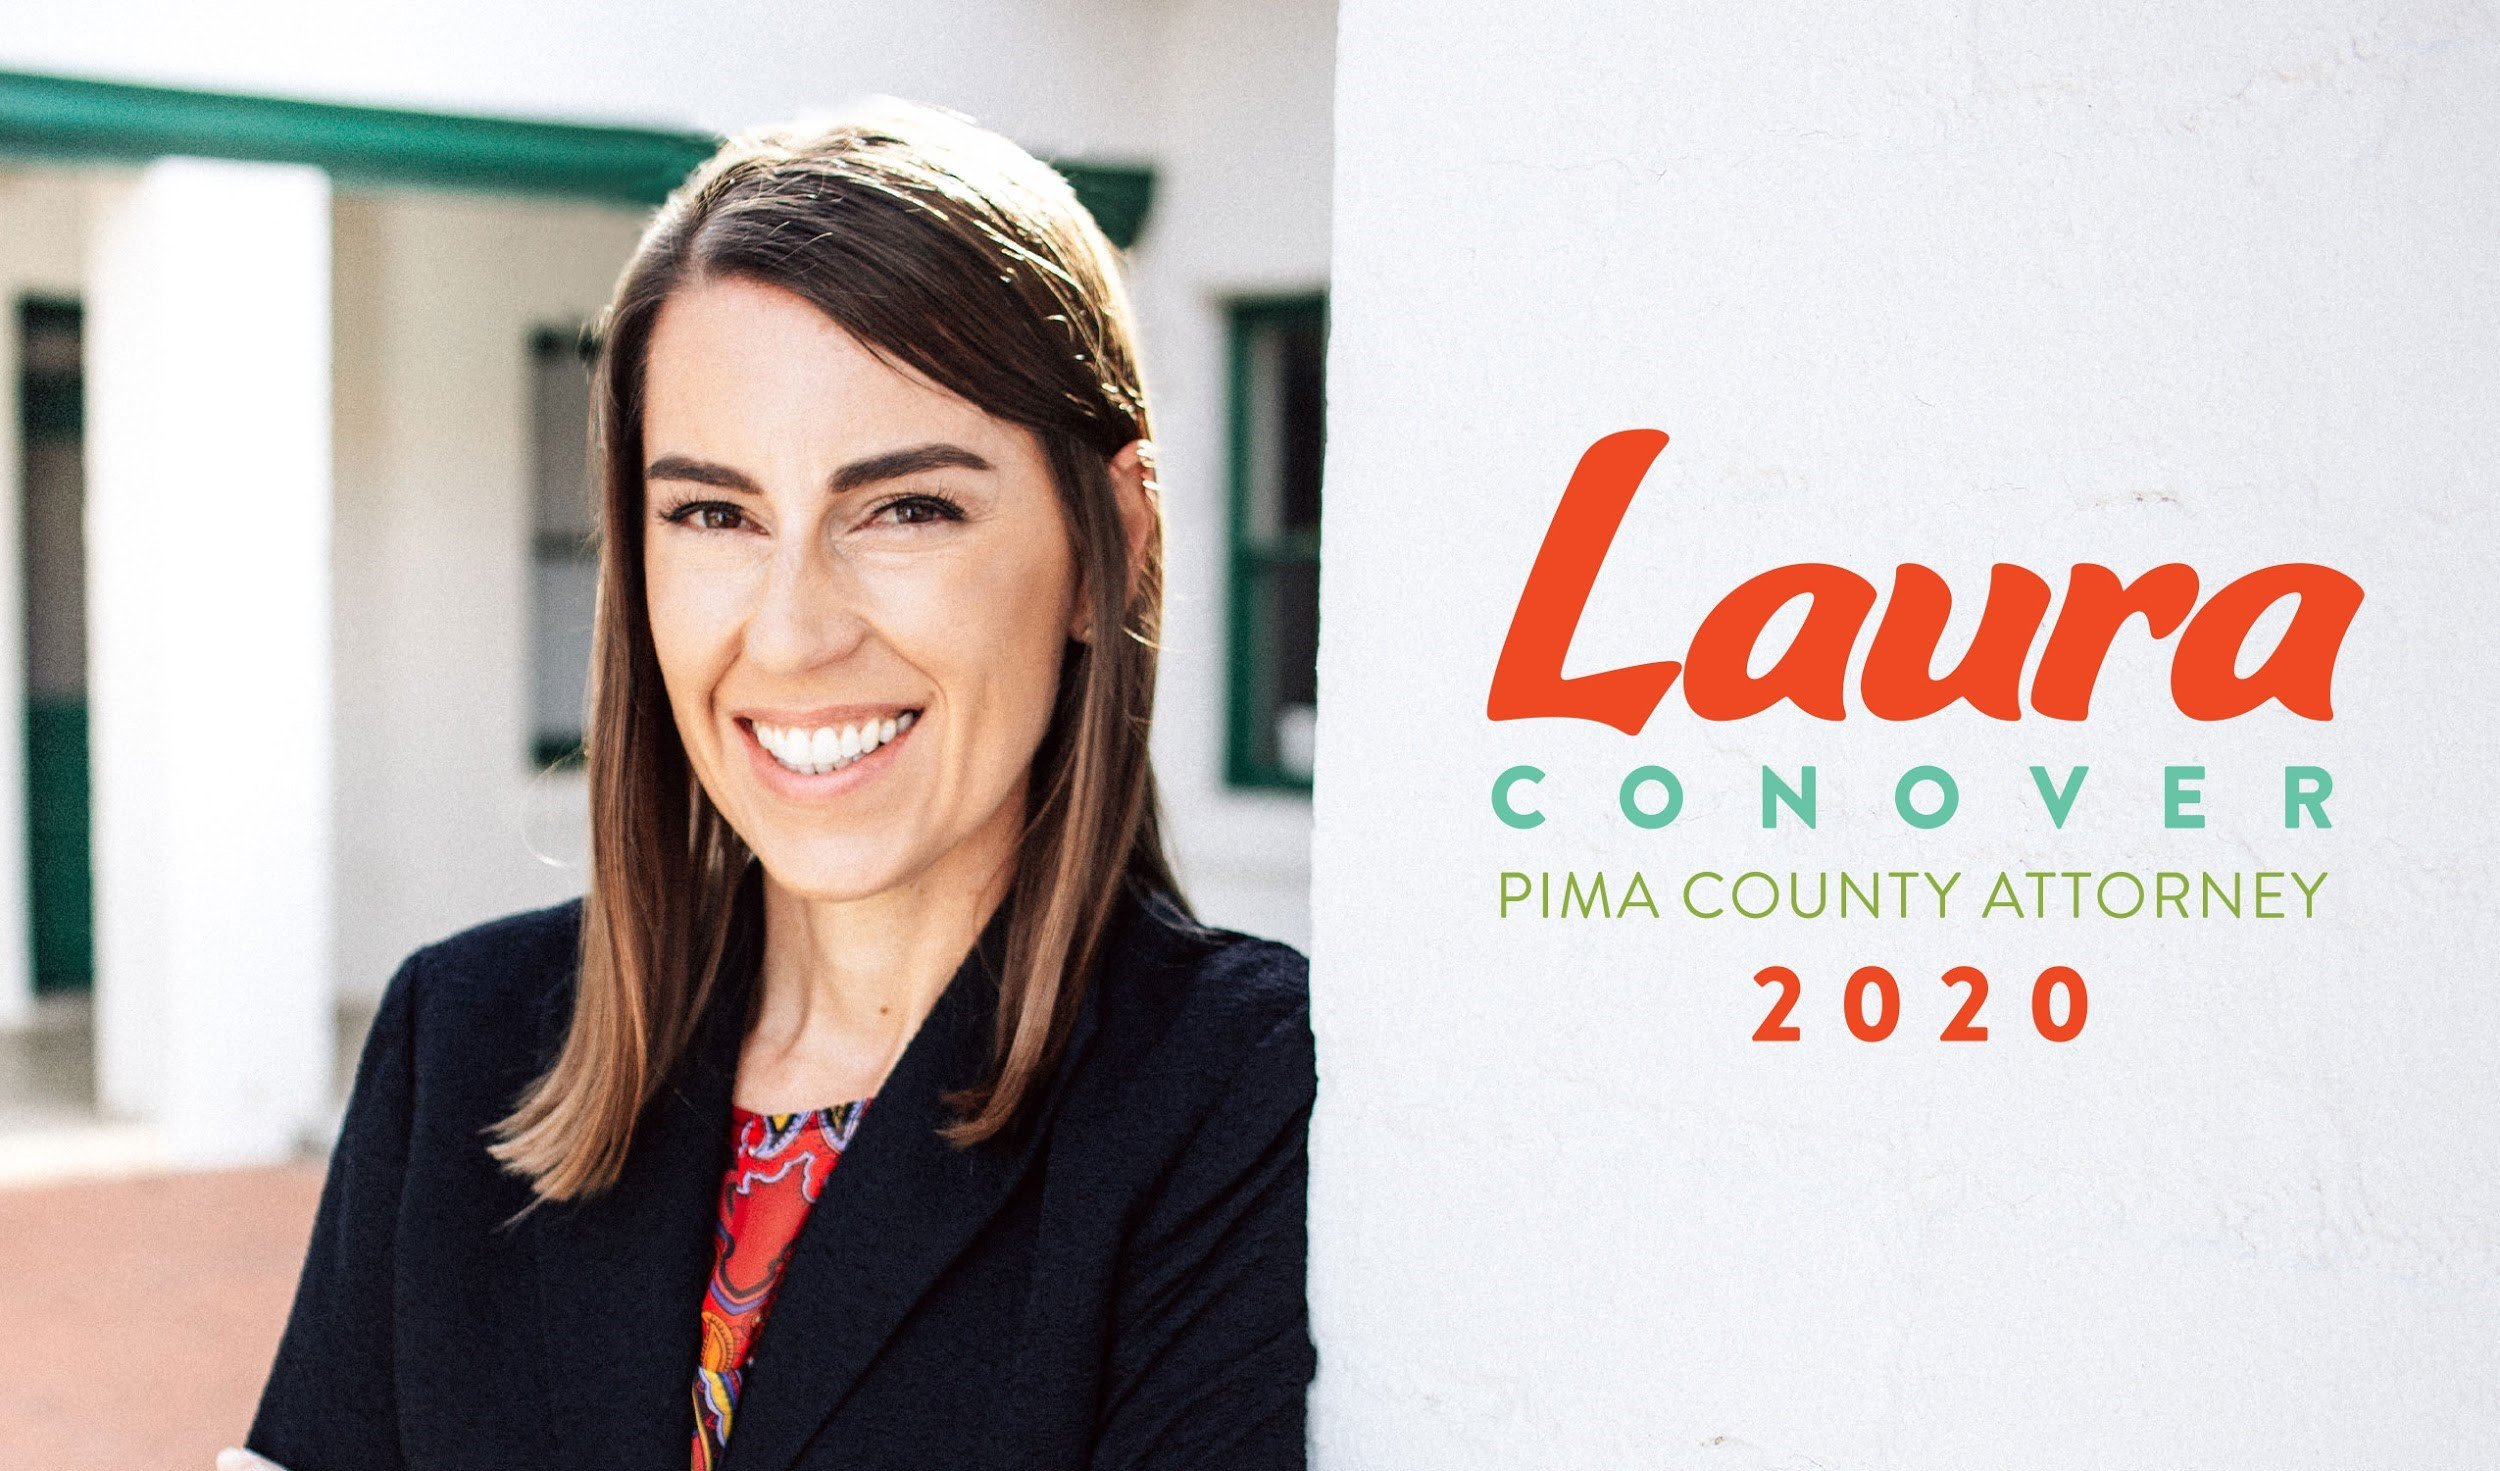 laura conover for county attorney